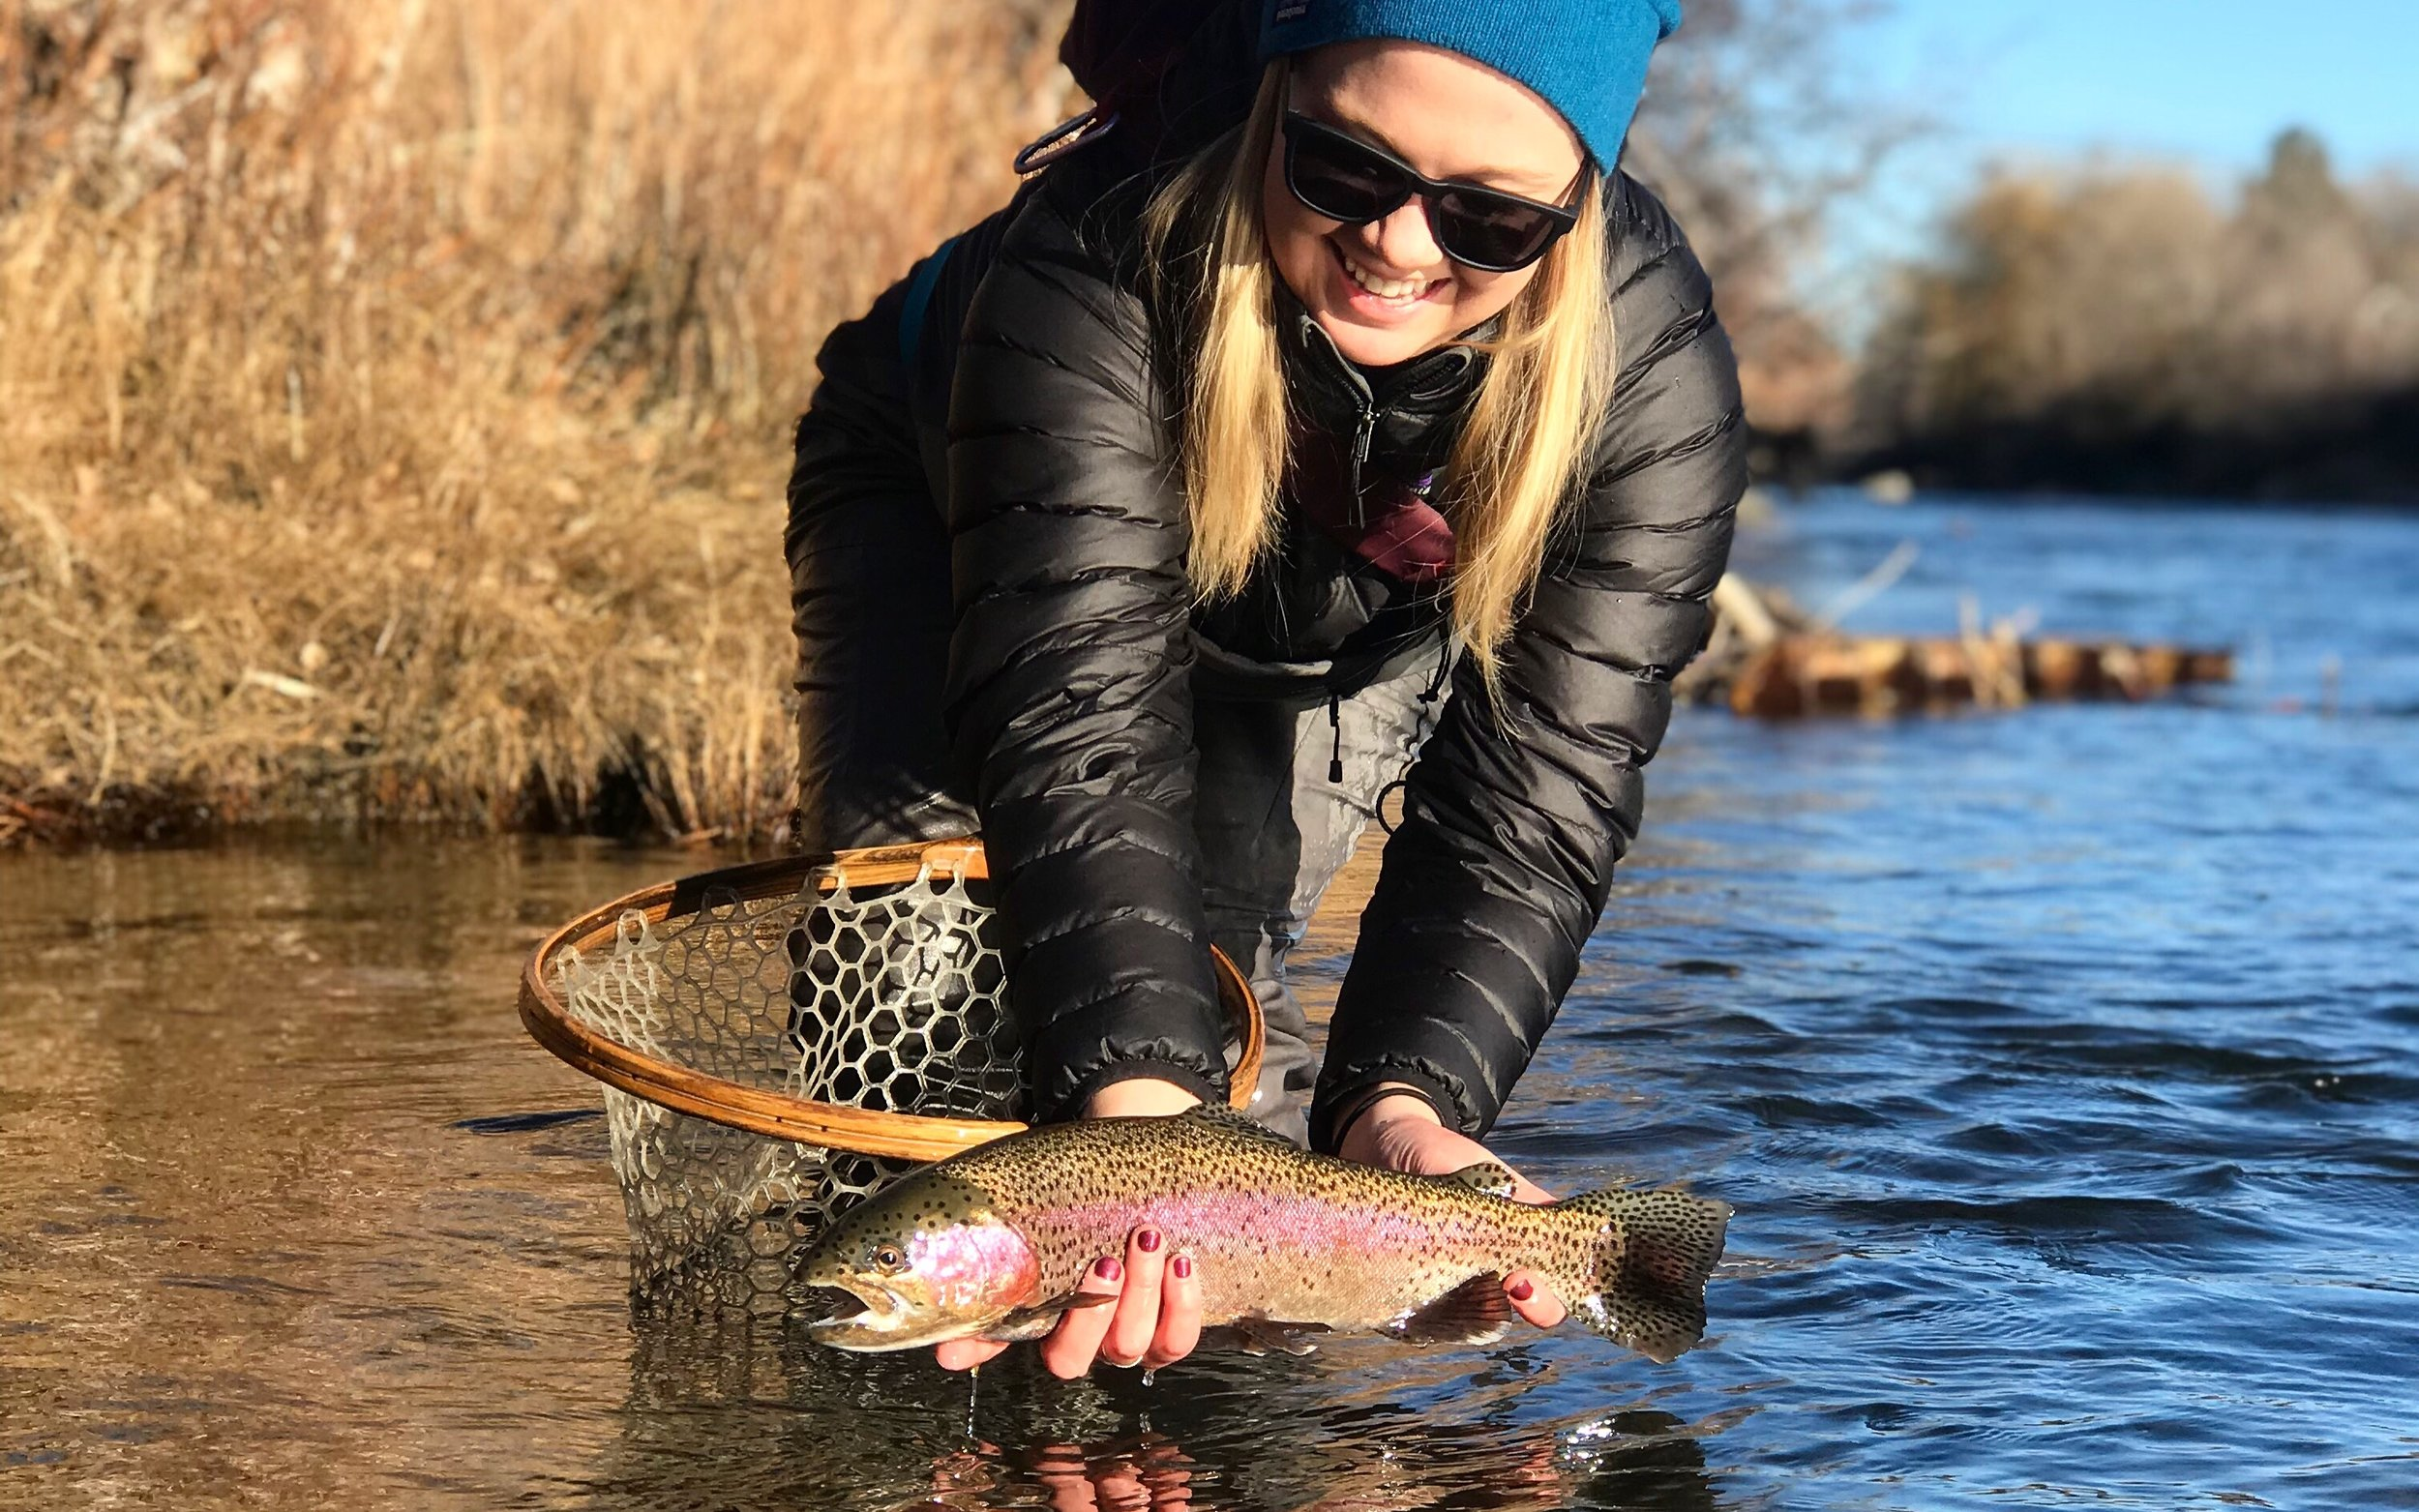 June 24-28 WATER: - Tour the Patagonia Warehouse to see where they create waterproof fly fishing gear, then engage in a fun fly fishing lesson and bug hunt on the Truckee River. If we're lucky, we might even catch a fish!